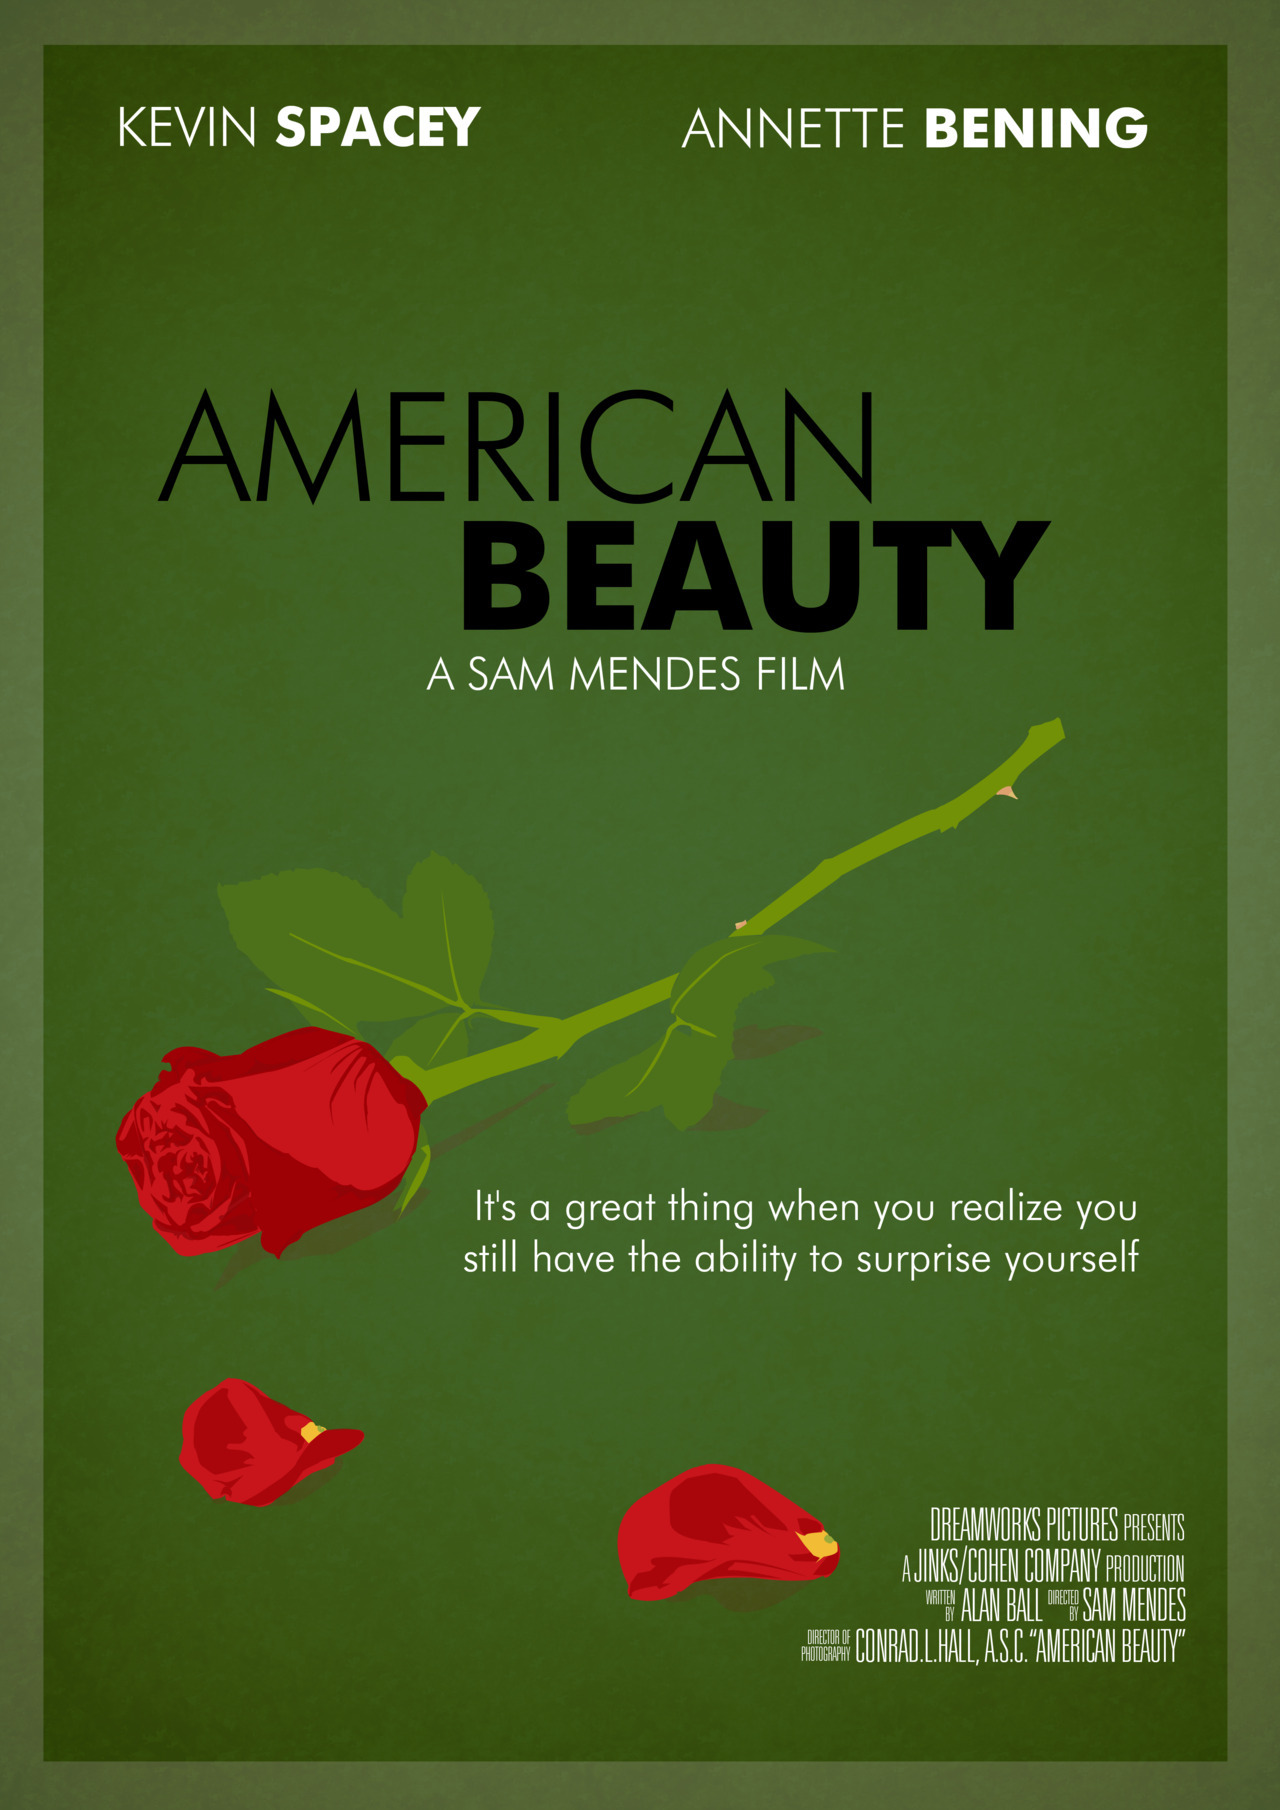 First installment hosers!American Beauty Movie Poster #1 of 7, 2012. One for every day of the week.